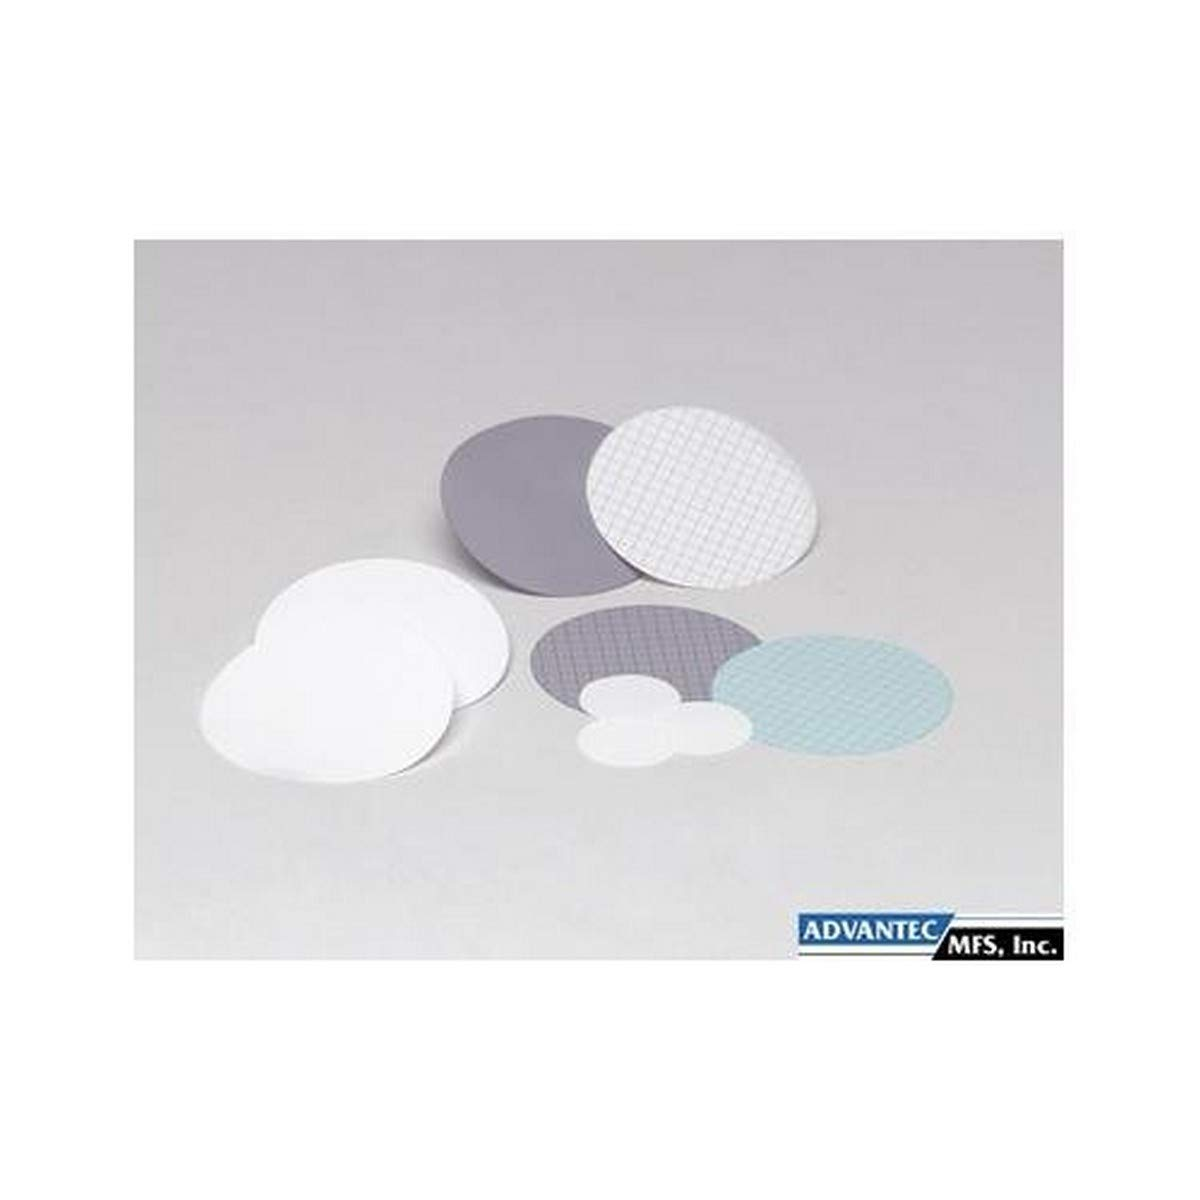 Advantec MFS A045W047A Membrane Filter Grid Sterile with Free shipping anywhere in the specialty shop nation Pad